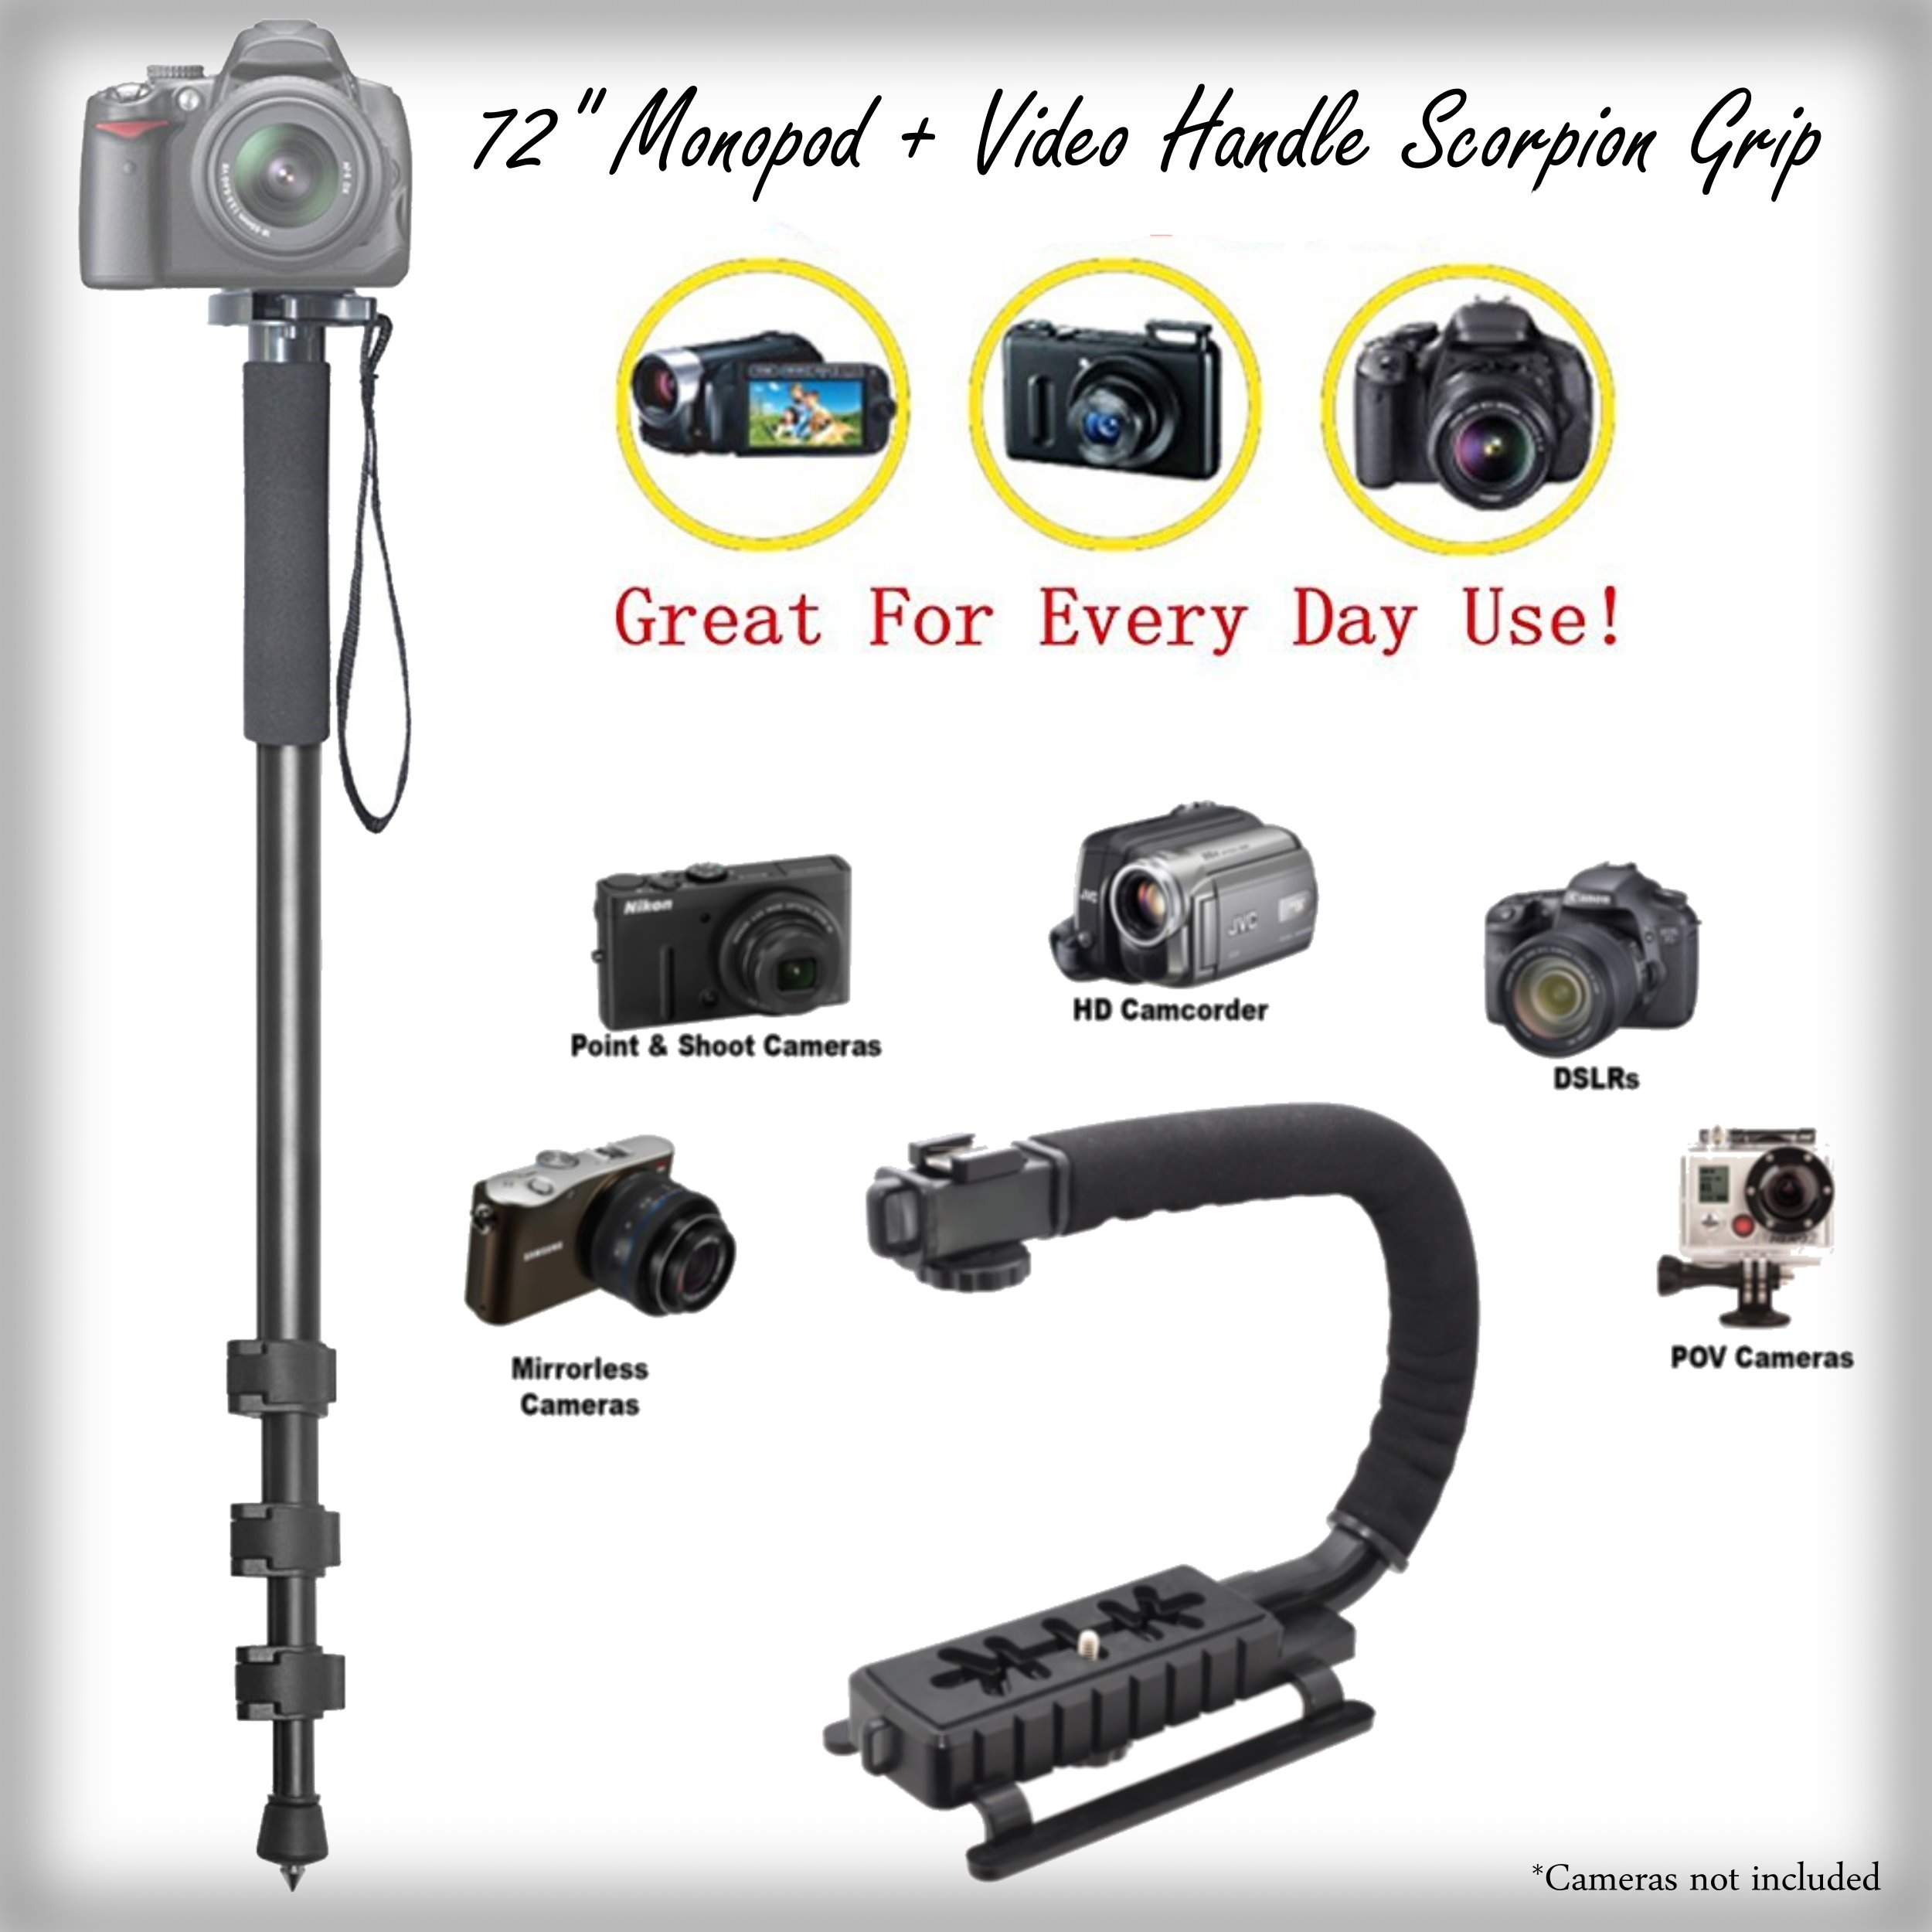 Versatile 72'' Monopod + Video Handle Scorpion Grip Bundle for Nikon Coolpix S3600 - Padded Handles Supports Multiple Accessories